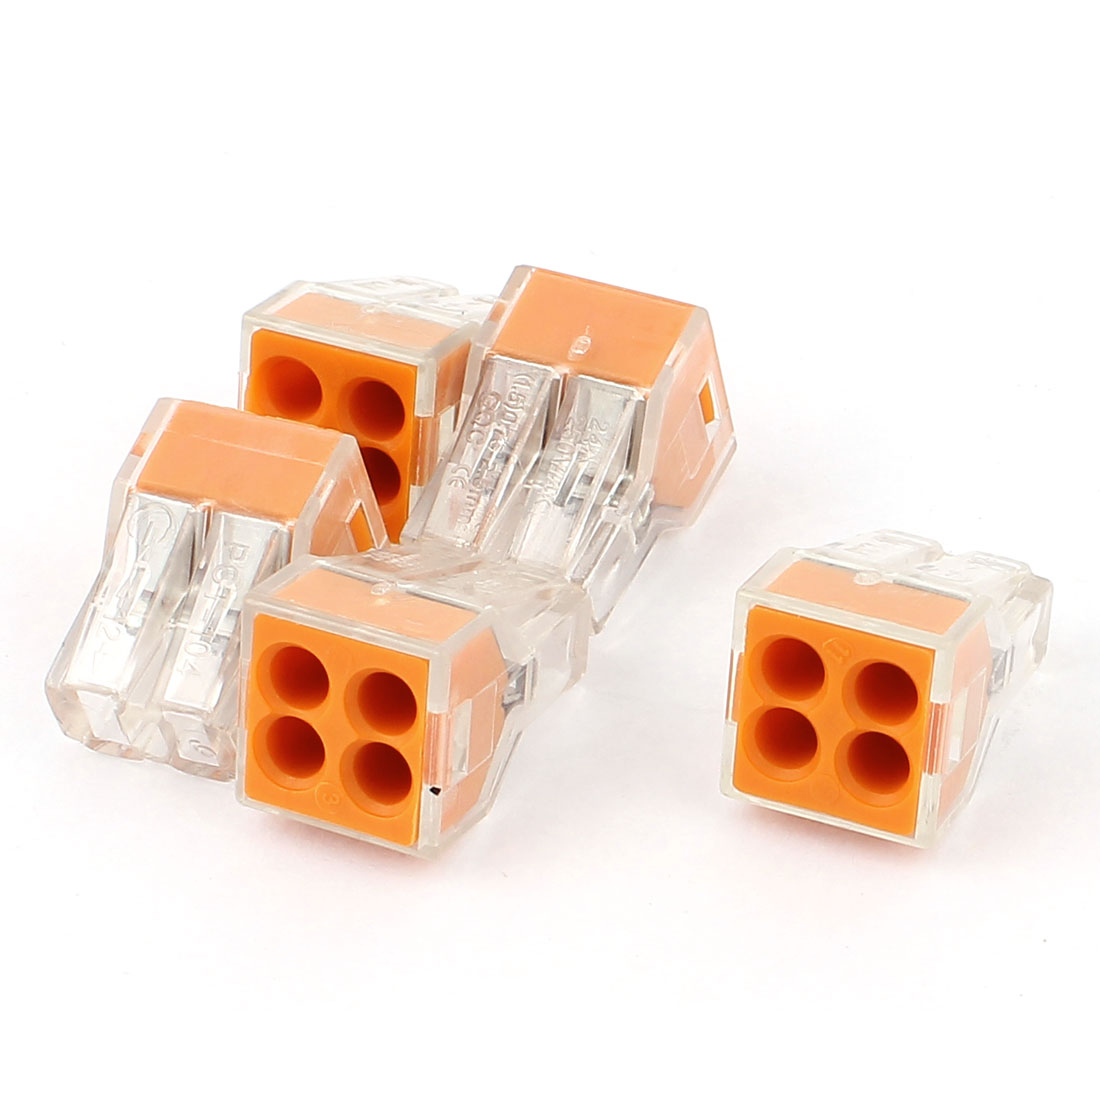 18-12AWG 4 Way Nylon Electric Wall-Nuts Push-Wire Connector Terminal Block